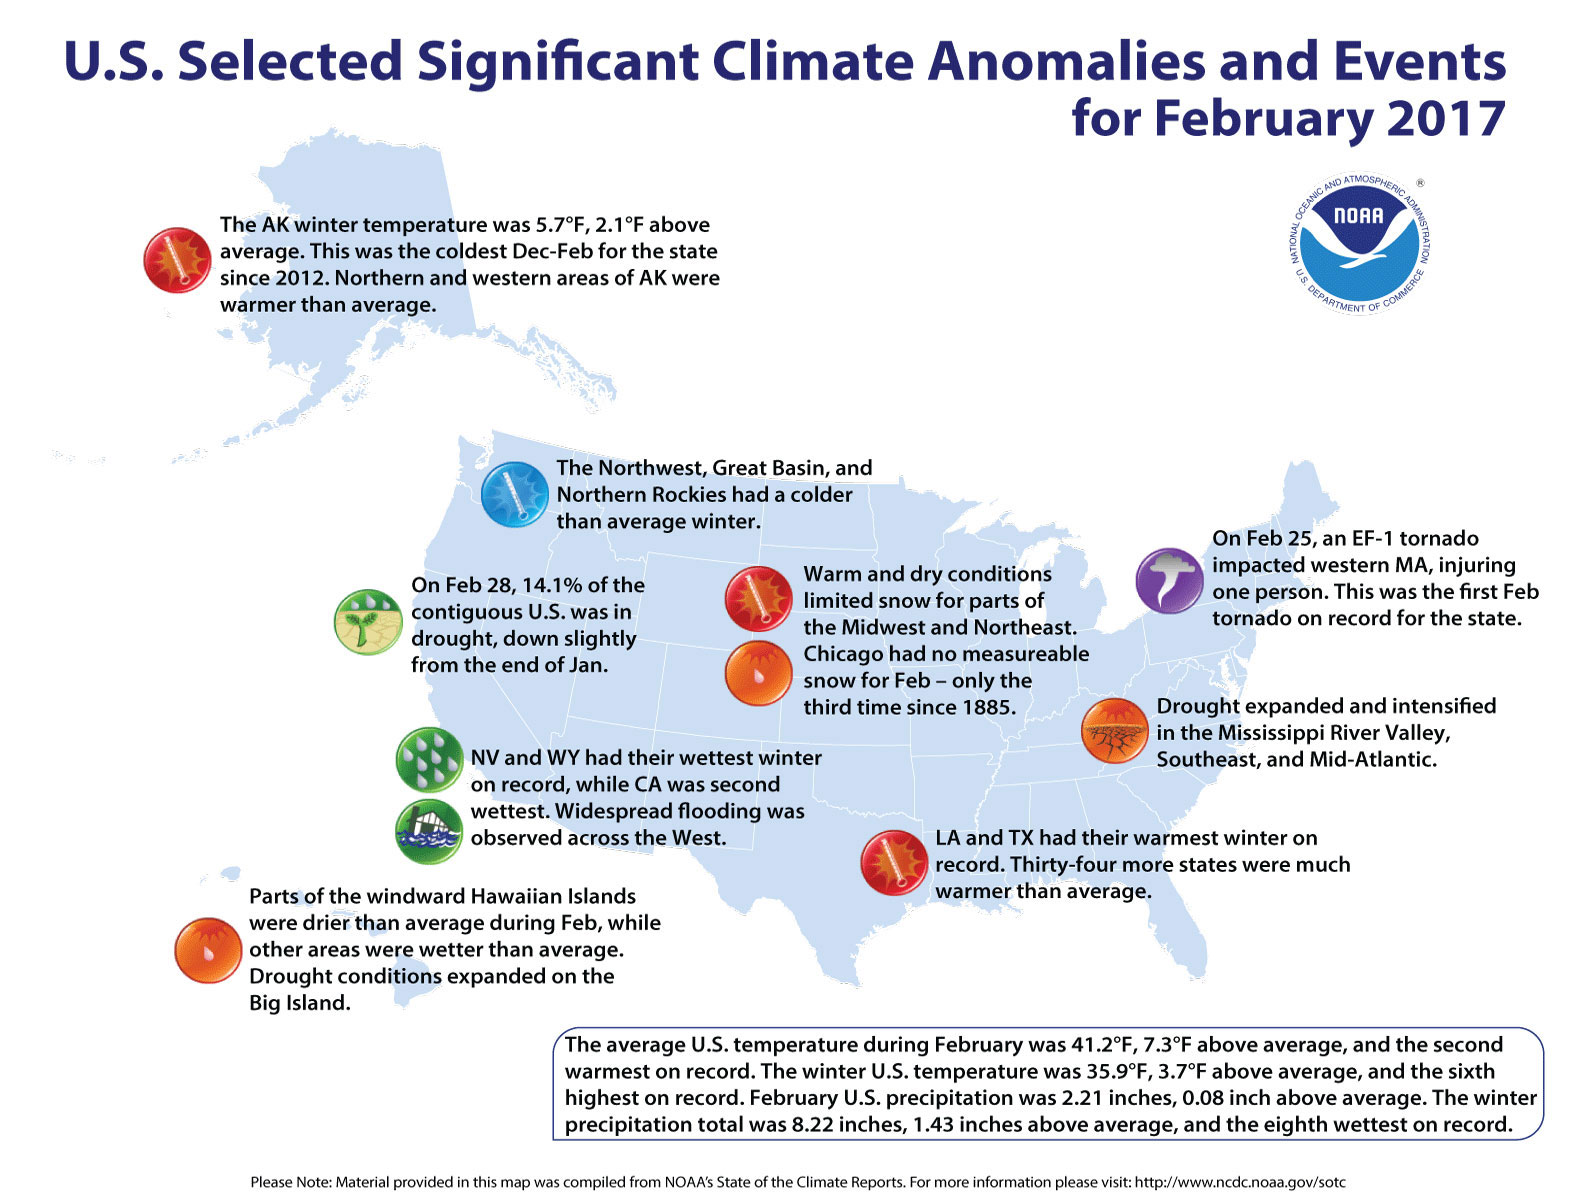 Map of U.S. selected significant climate anomalies and events for February 2017